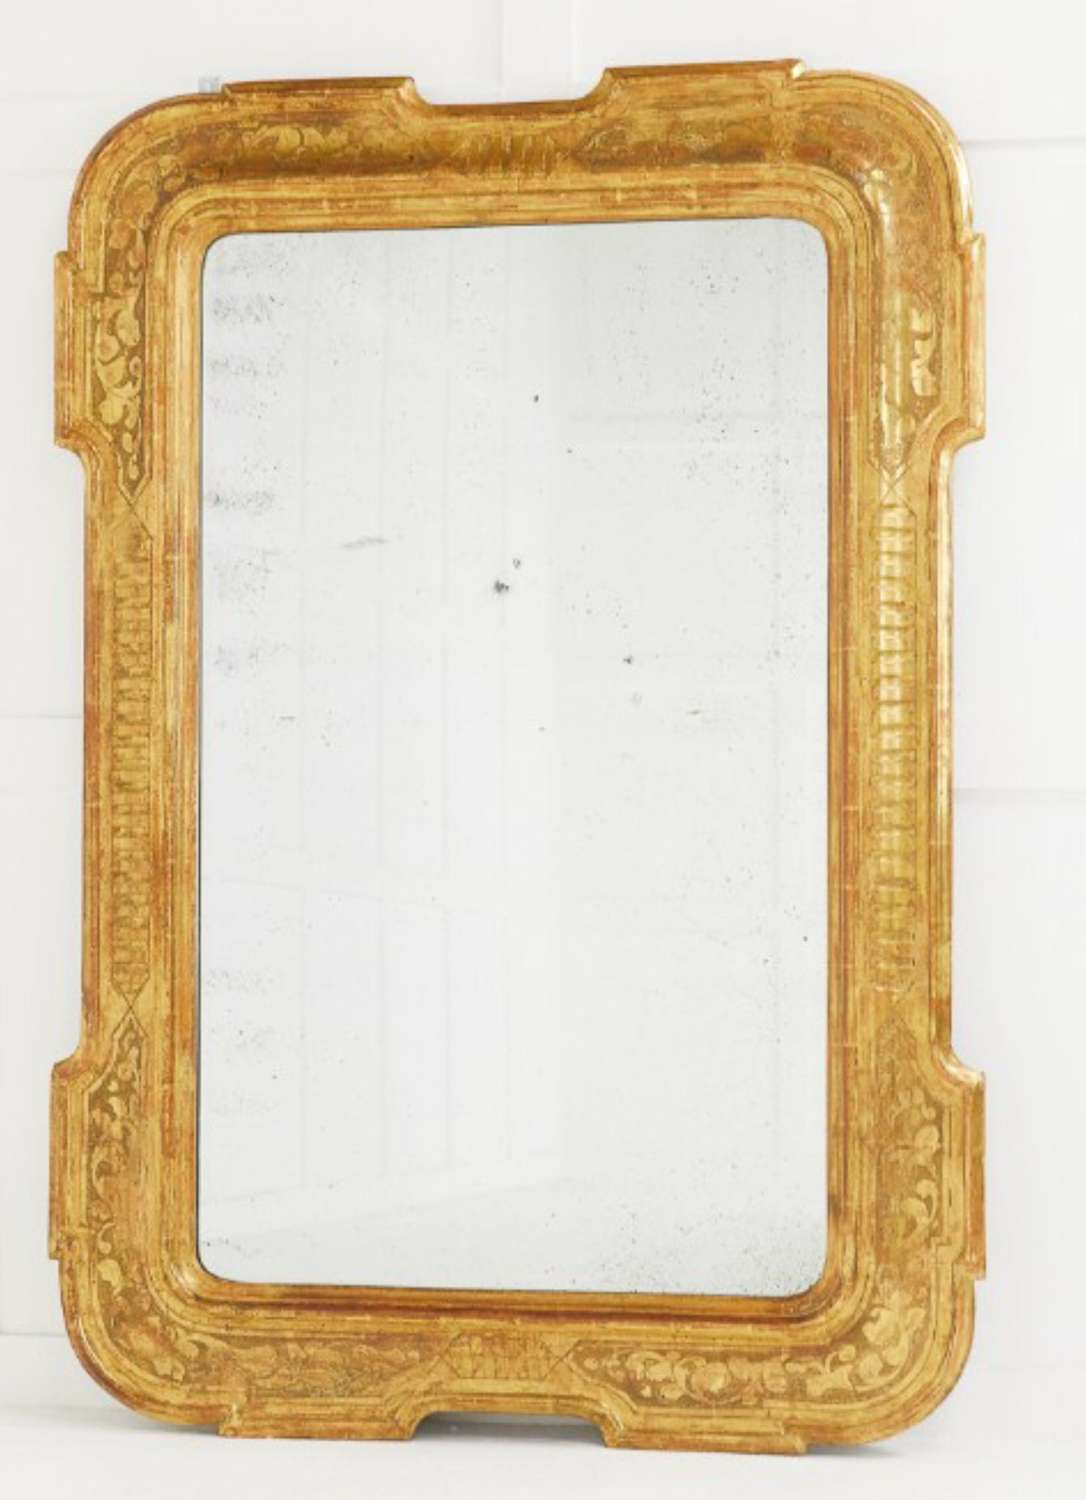 C18th Italian gilt wood wall mirror